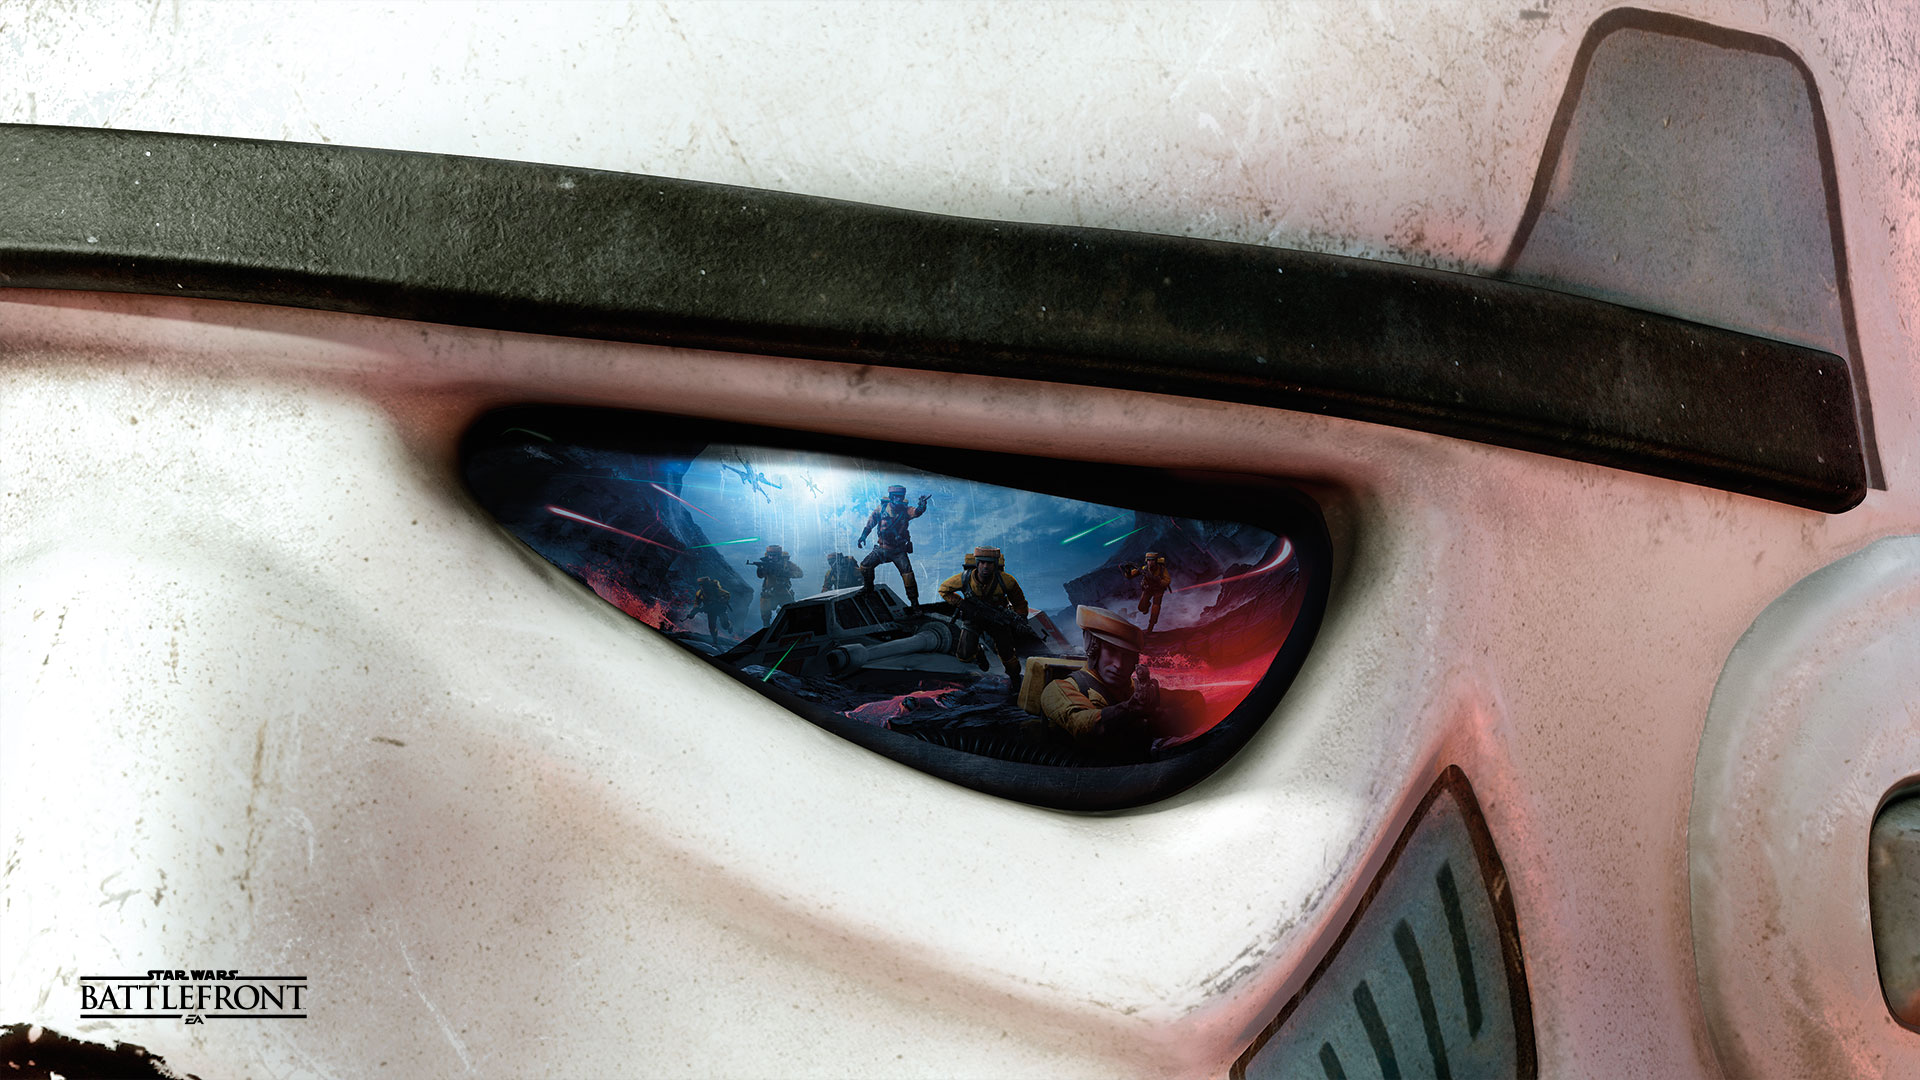 New Star Wars: Battlefront Mode Revealed – Its Called Turning Point and Comes to Those Who Pre-Ordered One Week Earlier